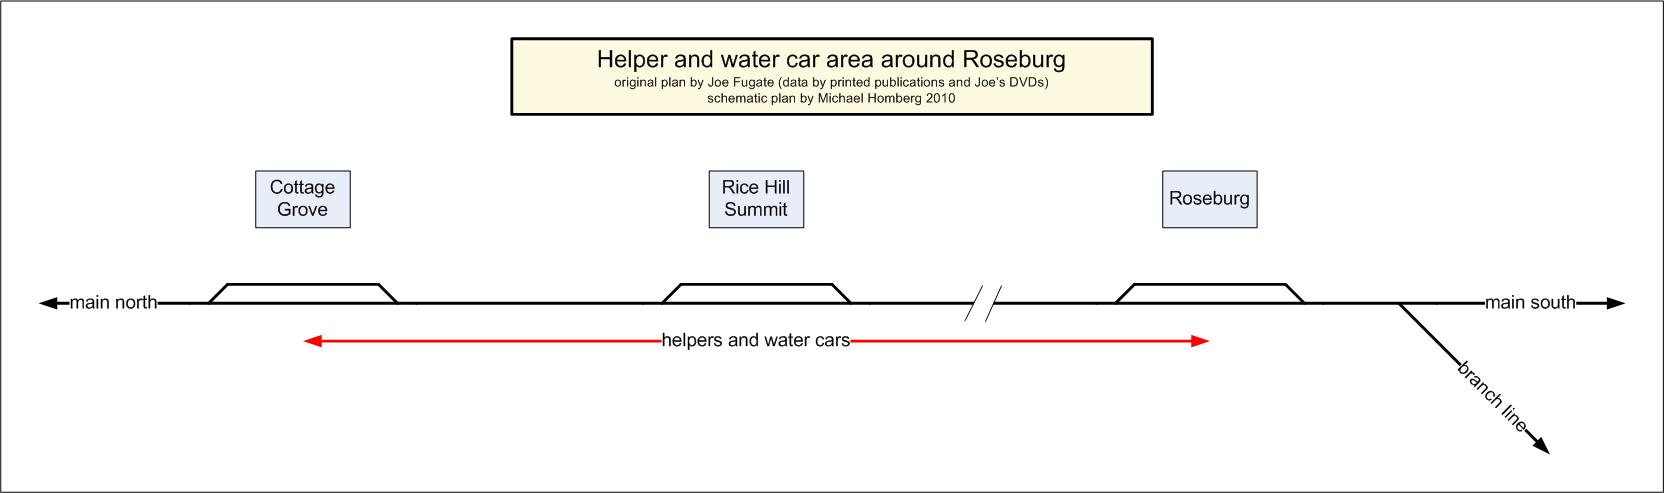 Roseburg_helper-distr.jpg